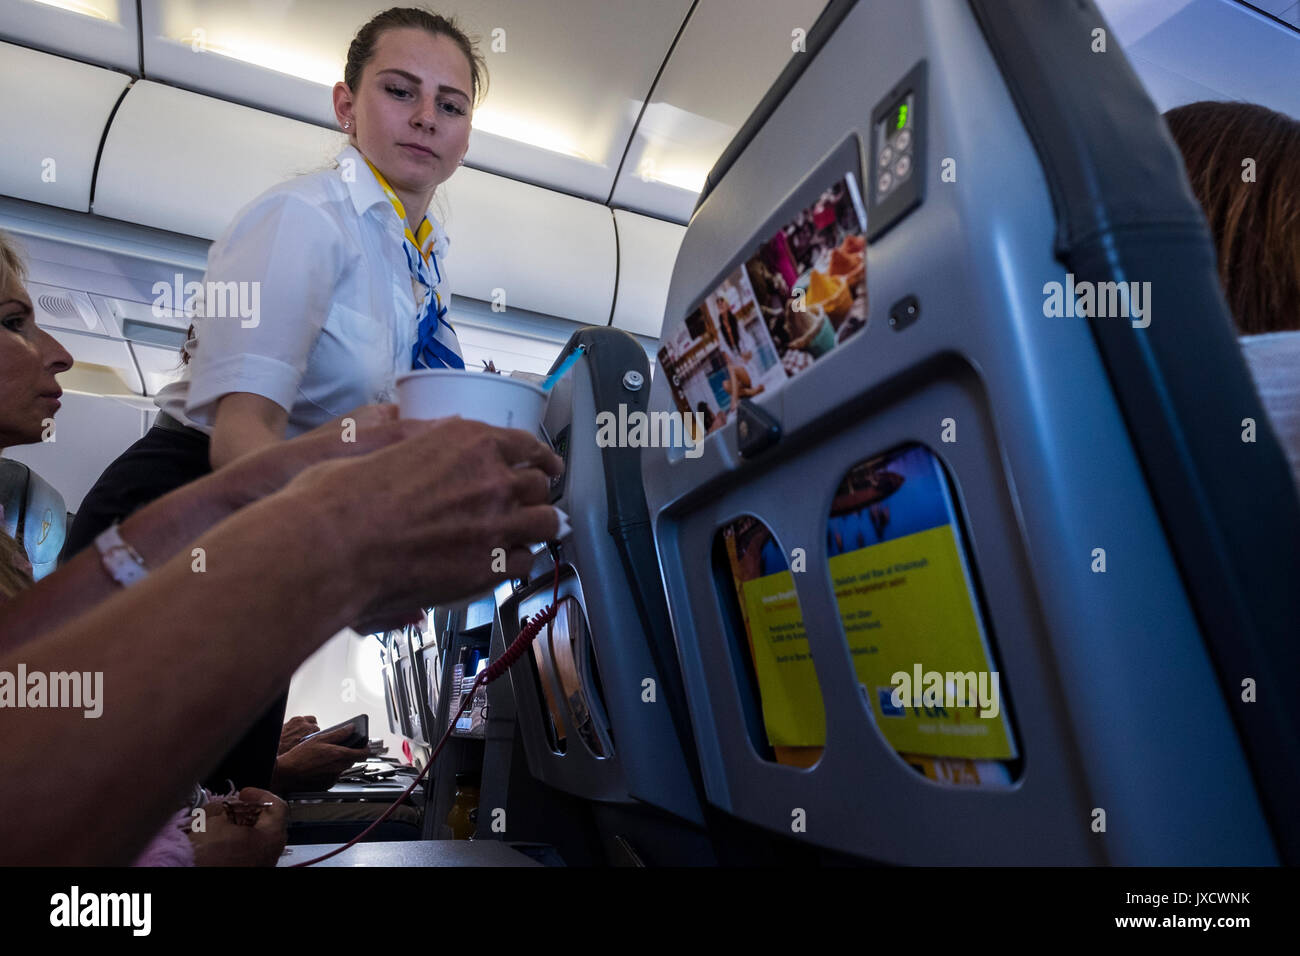 Condor, Thomas Cook airlines, cabin crew selling drinks and snacks on board a flight - Stock Image